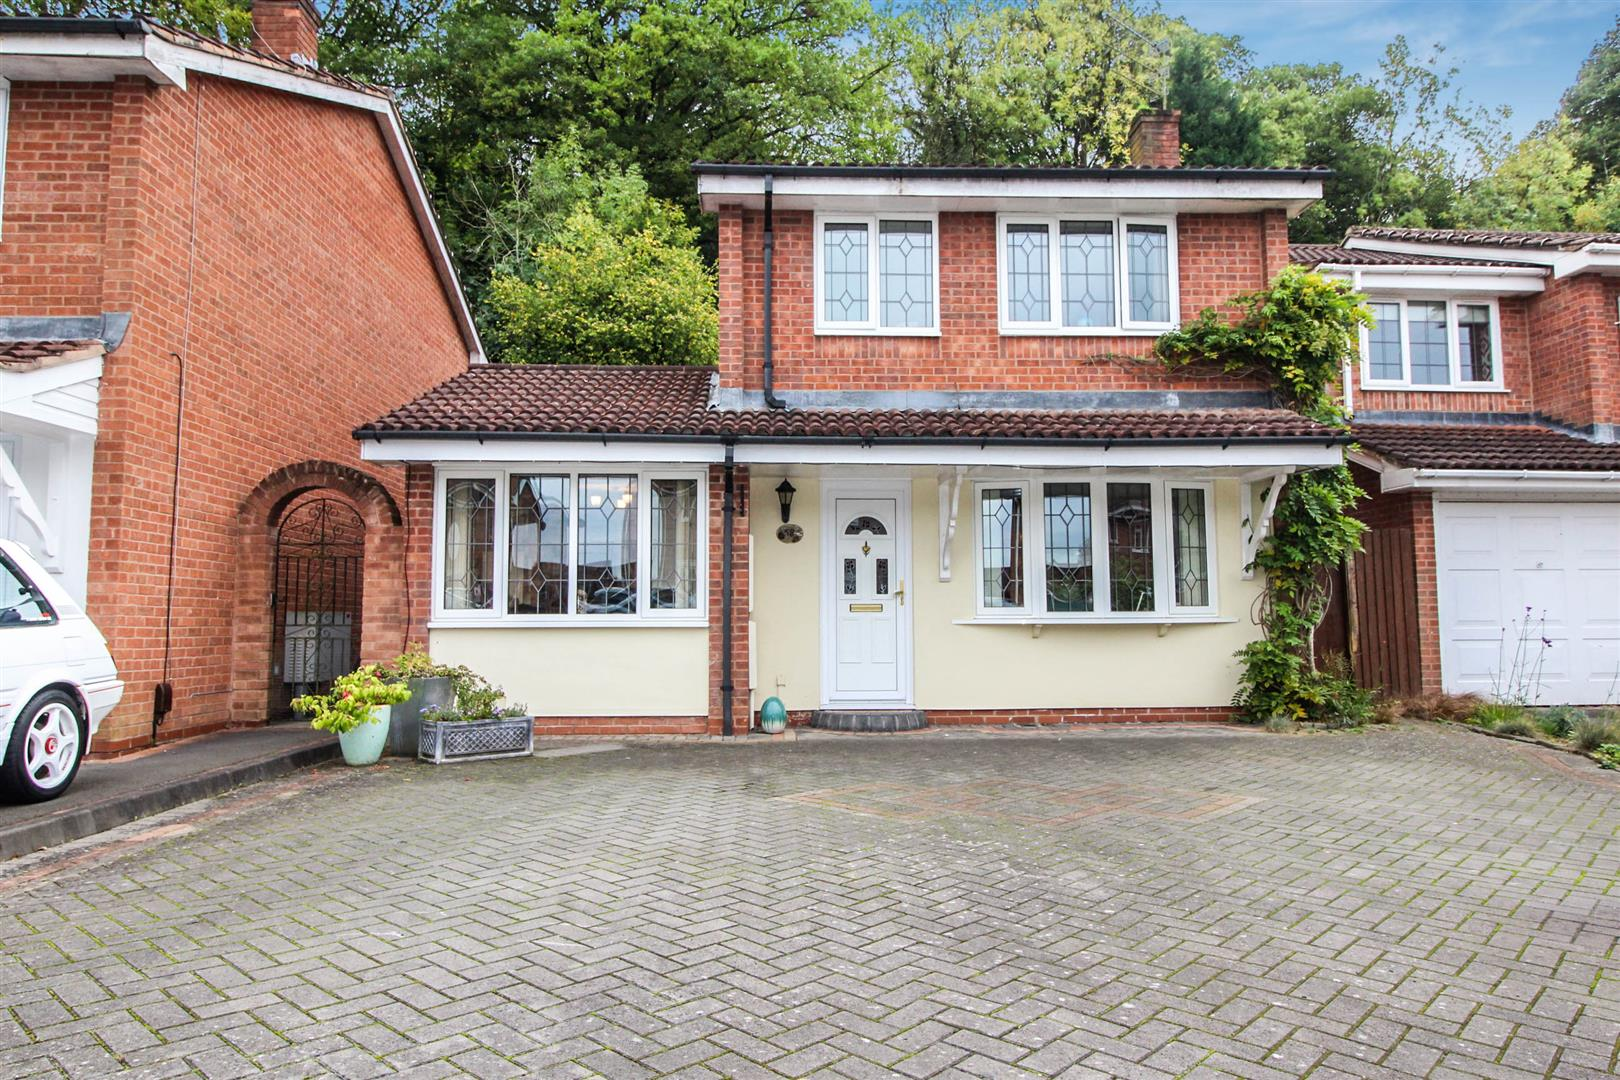 3 Bedrooms Detached House for sale in Marlpool Drive, Redditch